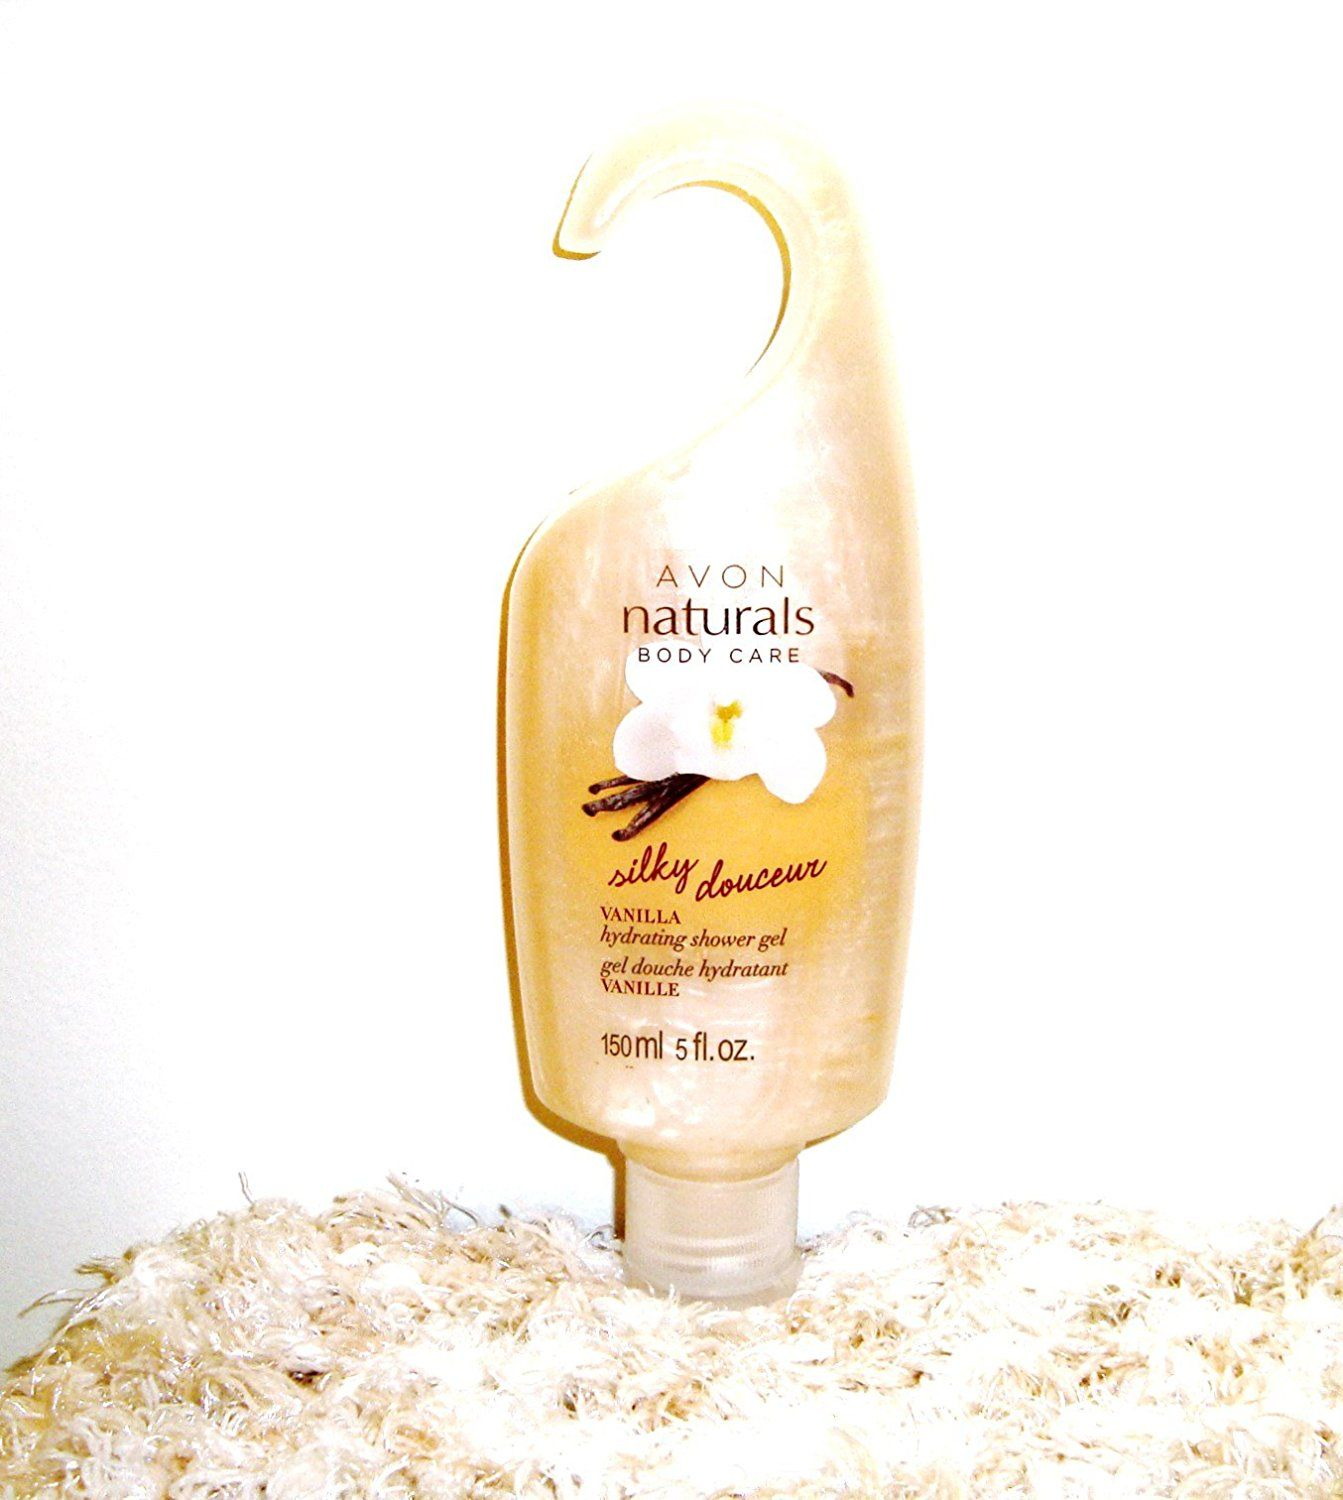 Avon Naturals Silky Vanilla Shower Gel 5 Oz See This Great St Ives Oatmeal Ampamp Shea Butter Body Wash 400ml Amazoncom Beauty